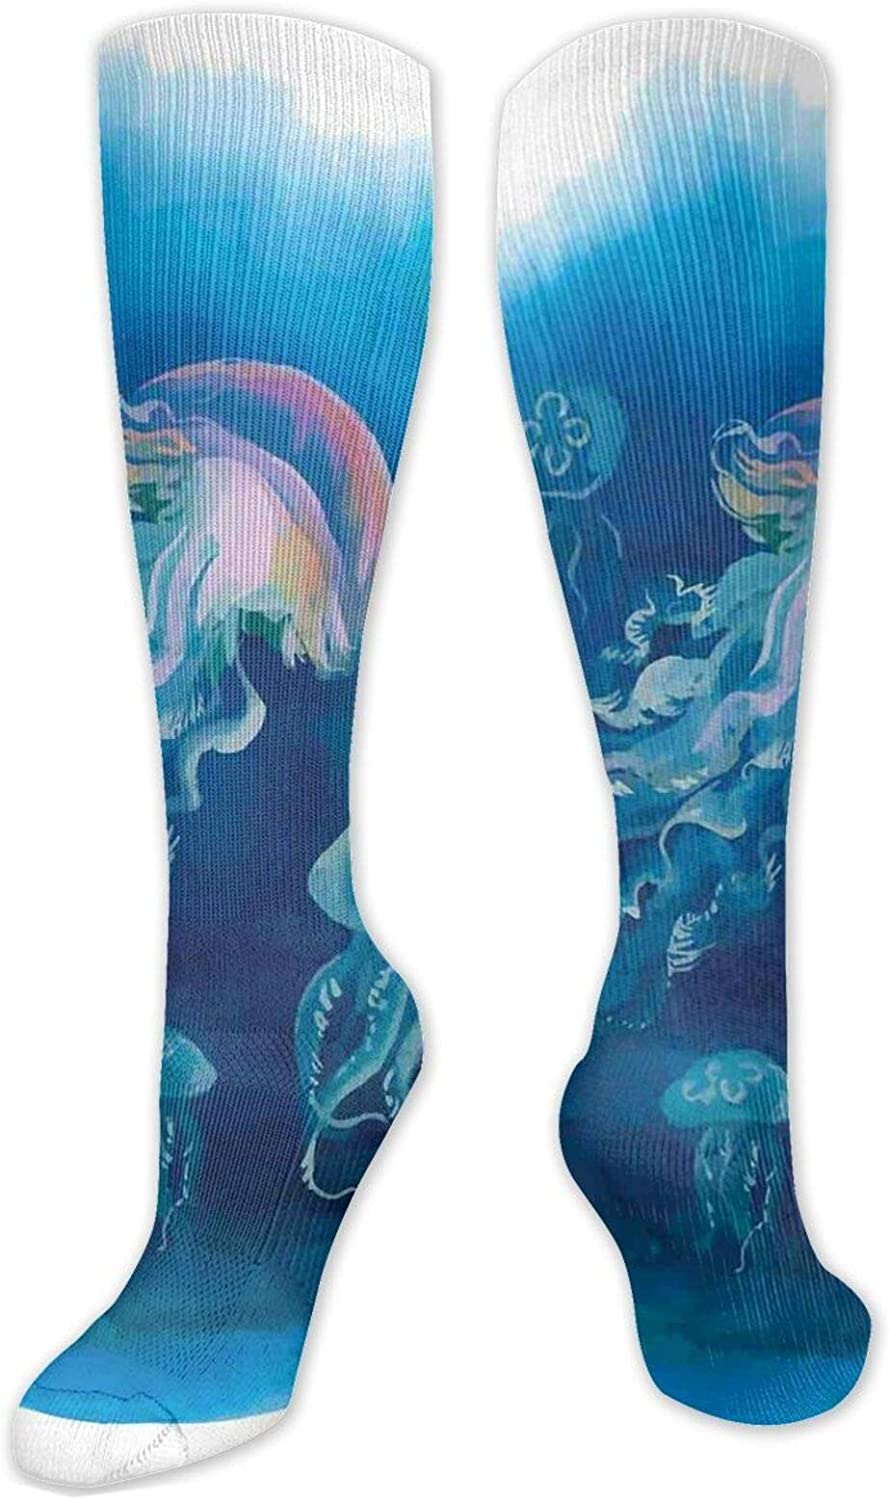 Compression High Socks-Illustration Of Orchids And Curly Retro Patterns Romantic Design Best for Running,Athletic,Hiking,Travel,Flight